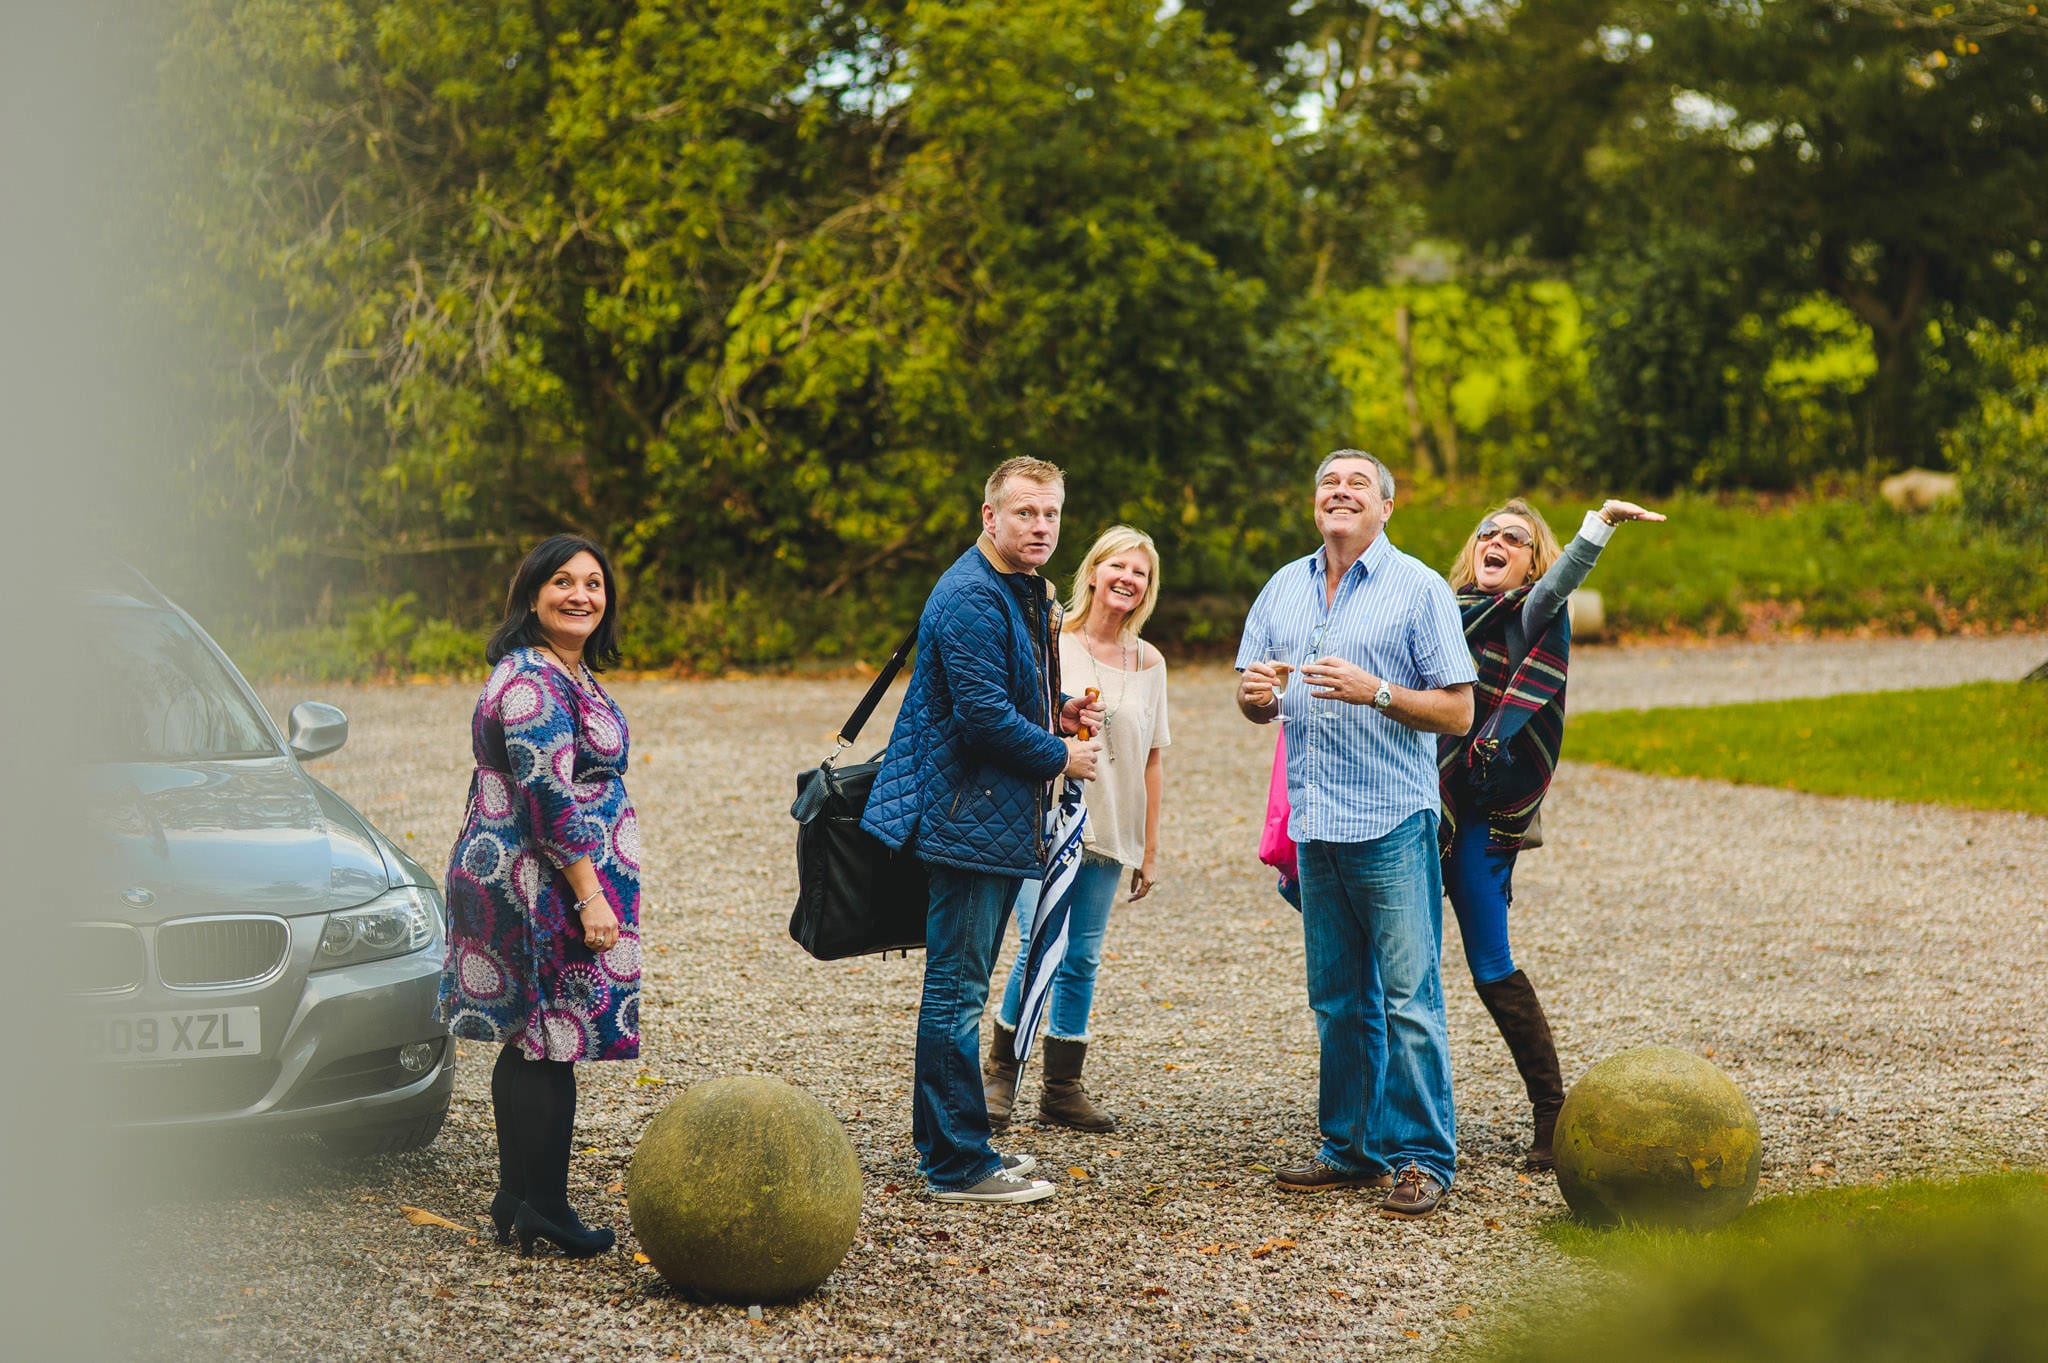 wedding photography west midlands 22 - Wedding photography West Midlands | Claire + Stephen